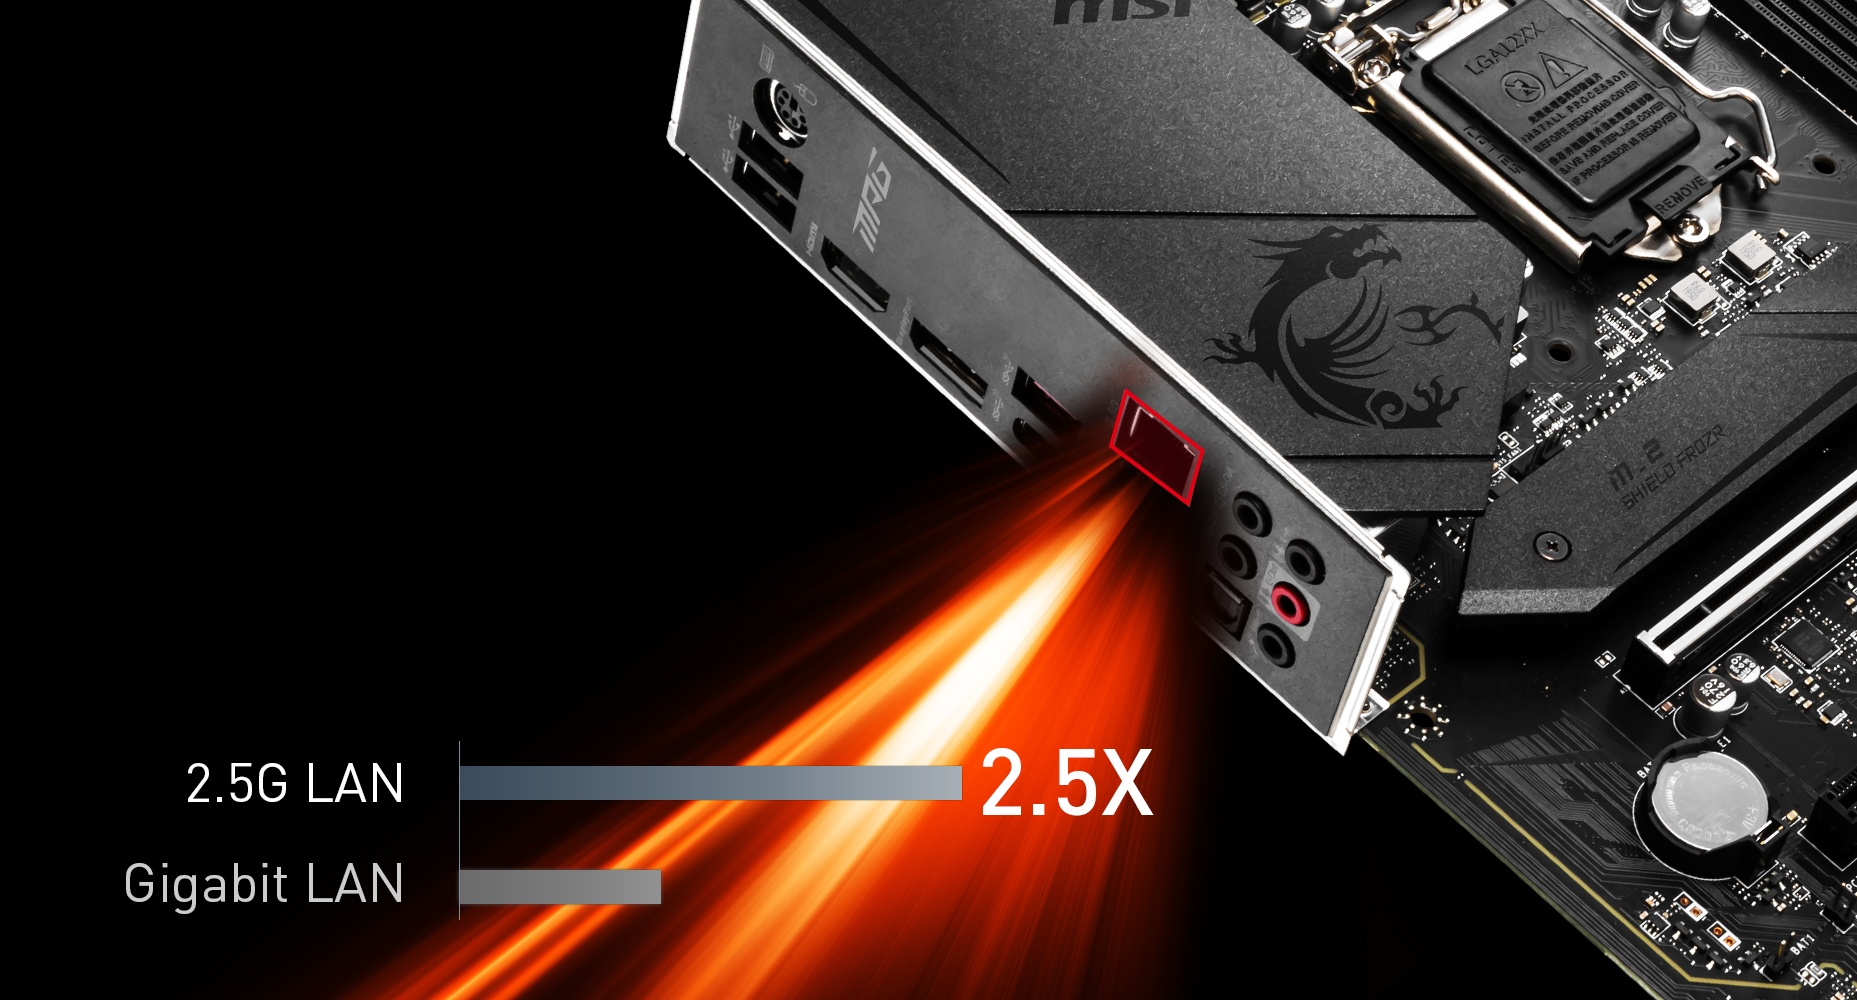 MSI MPG Z490 GAMING PLUS MAXIMIUM DATA TRANSFER WITH 2.5G LAN